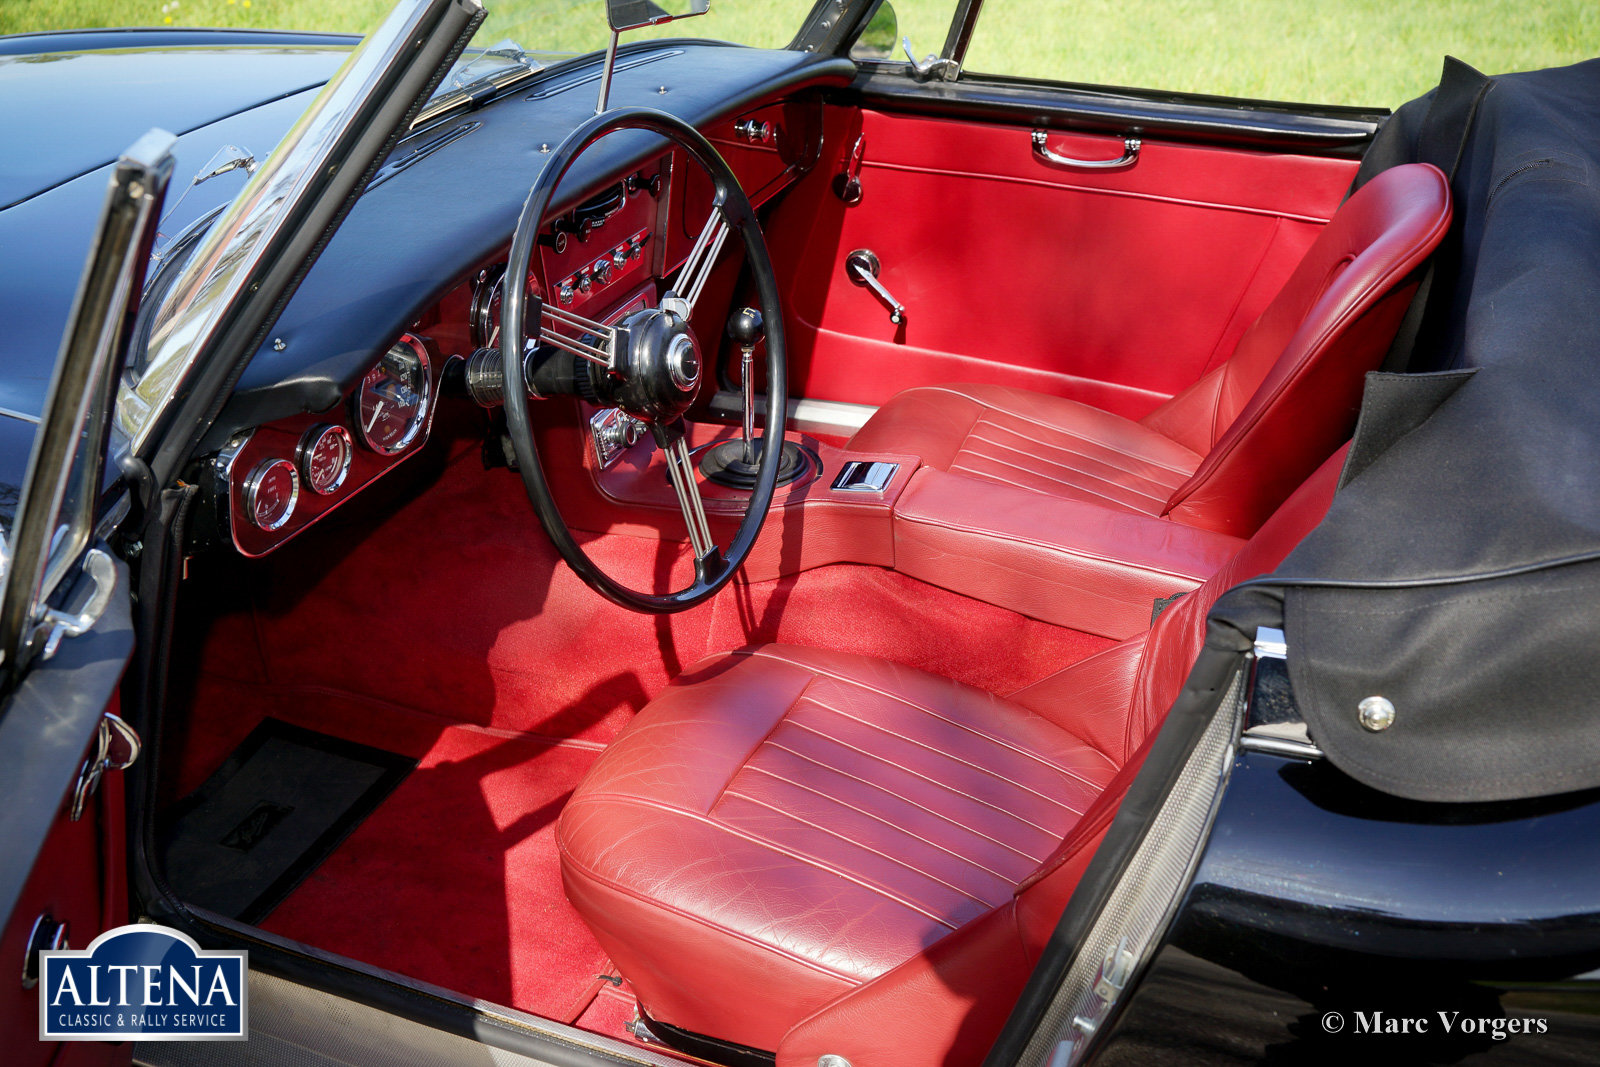 Austin Healey 3000 MK III, 1967 For Sale (picture 3 of 6)